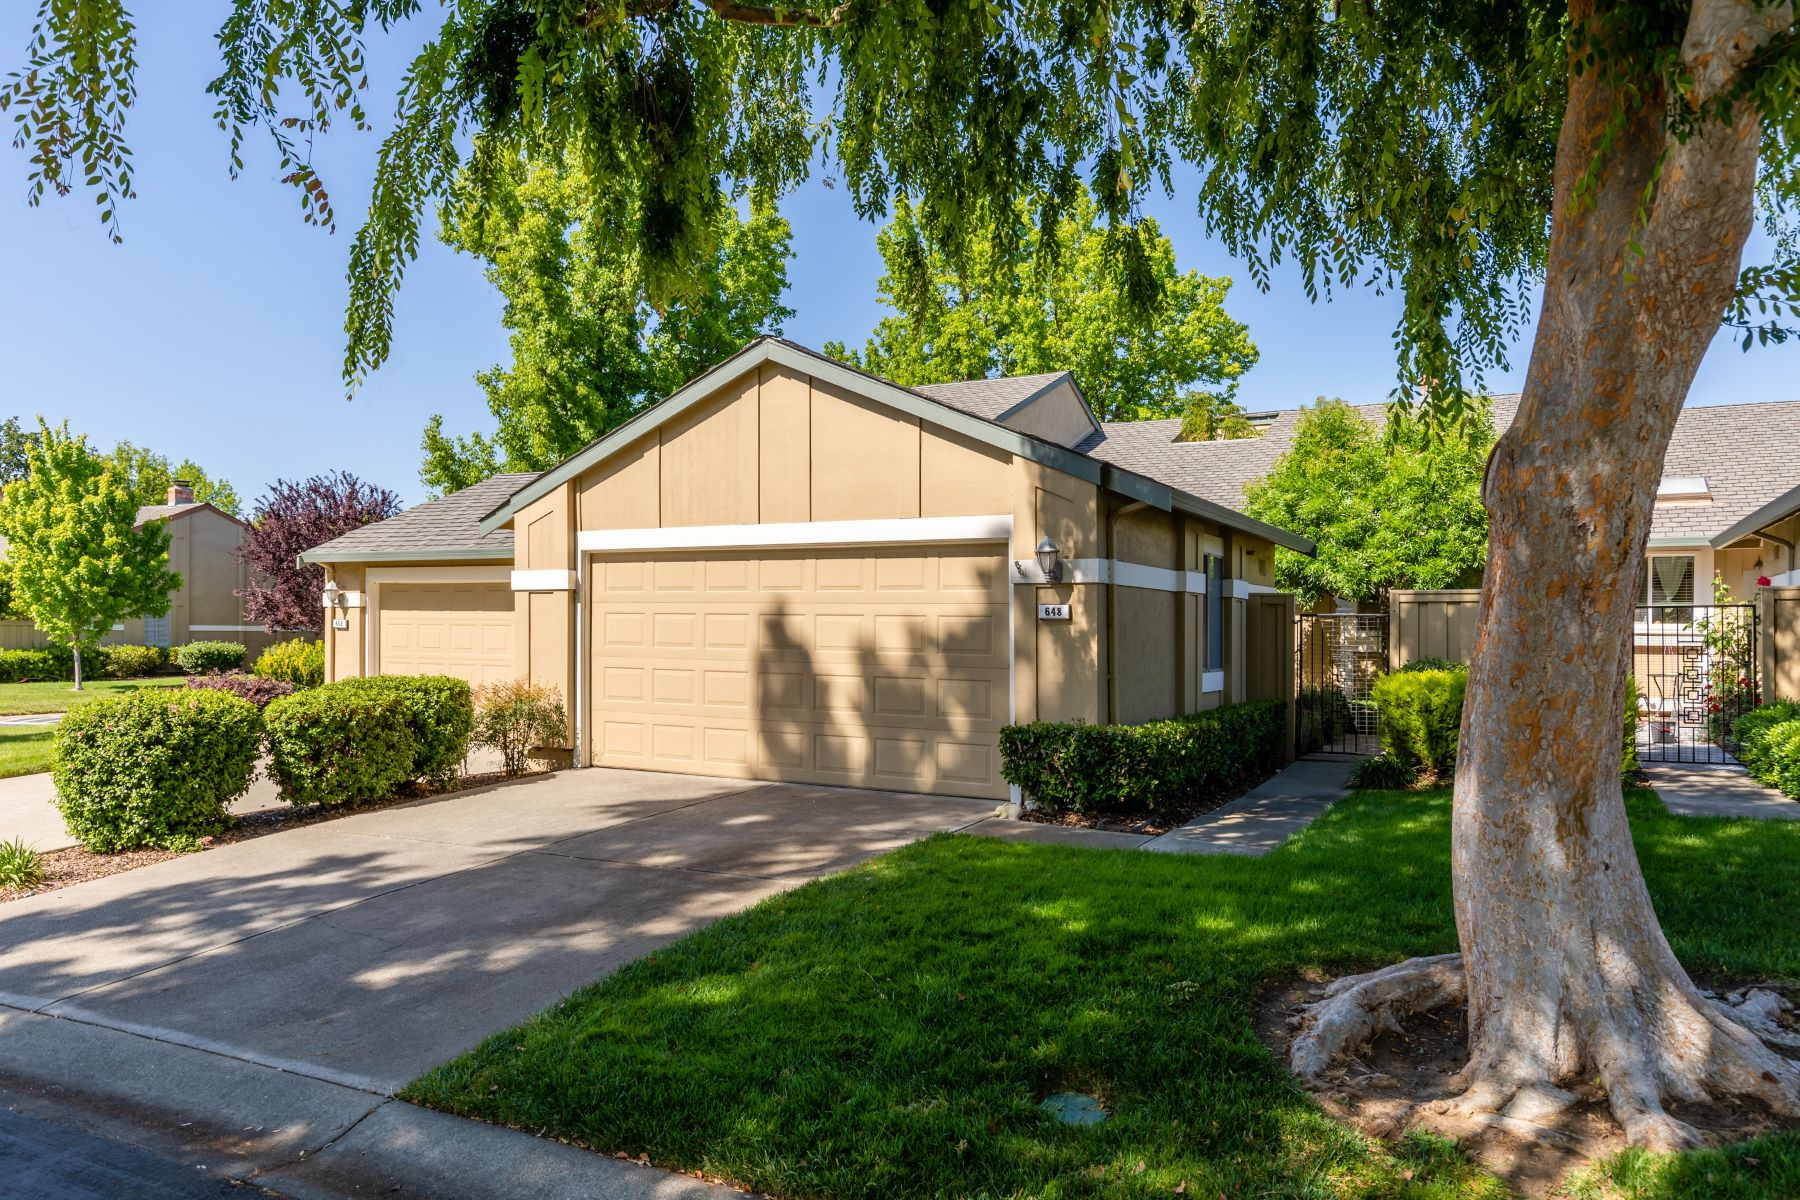 townhouses for Active at Desirable Walnut Creek Location 648 Savoy Court Walnut Creek, California 94598 United States